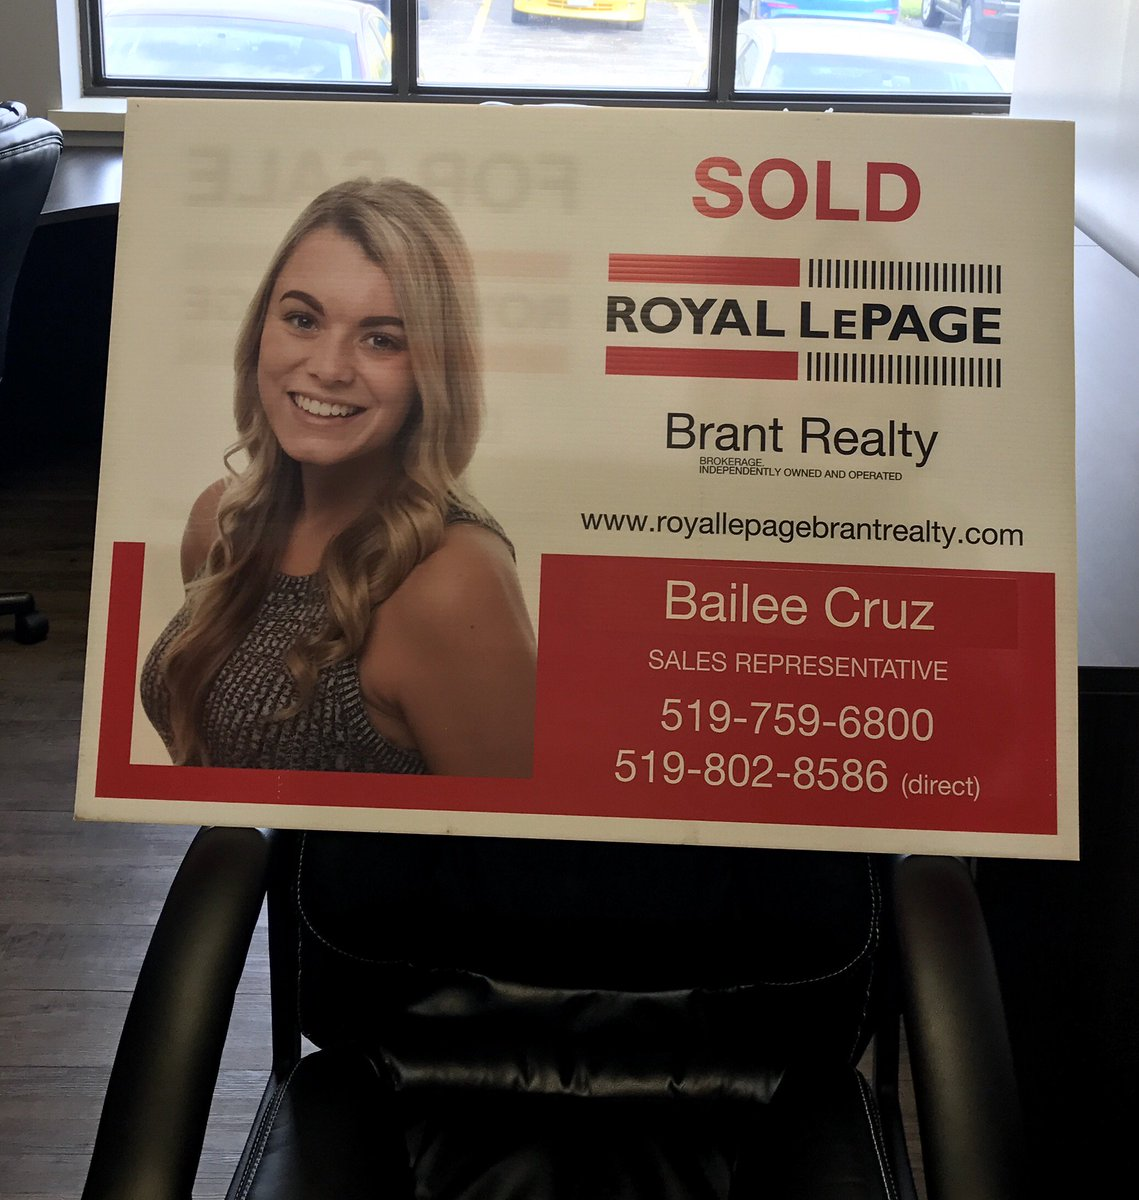 Same service, new name!  #Brantford #BrantCounty #RealEstate #Realtor #RealEstateAgent #RoyalLePage #RoyalLePageBrantRealty<br>http://pic.twitter.com/21mzW7uNCR